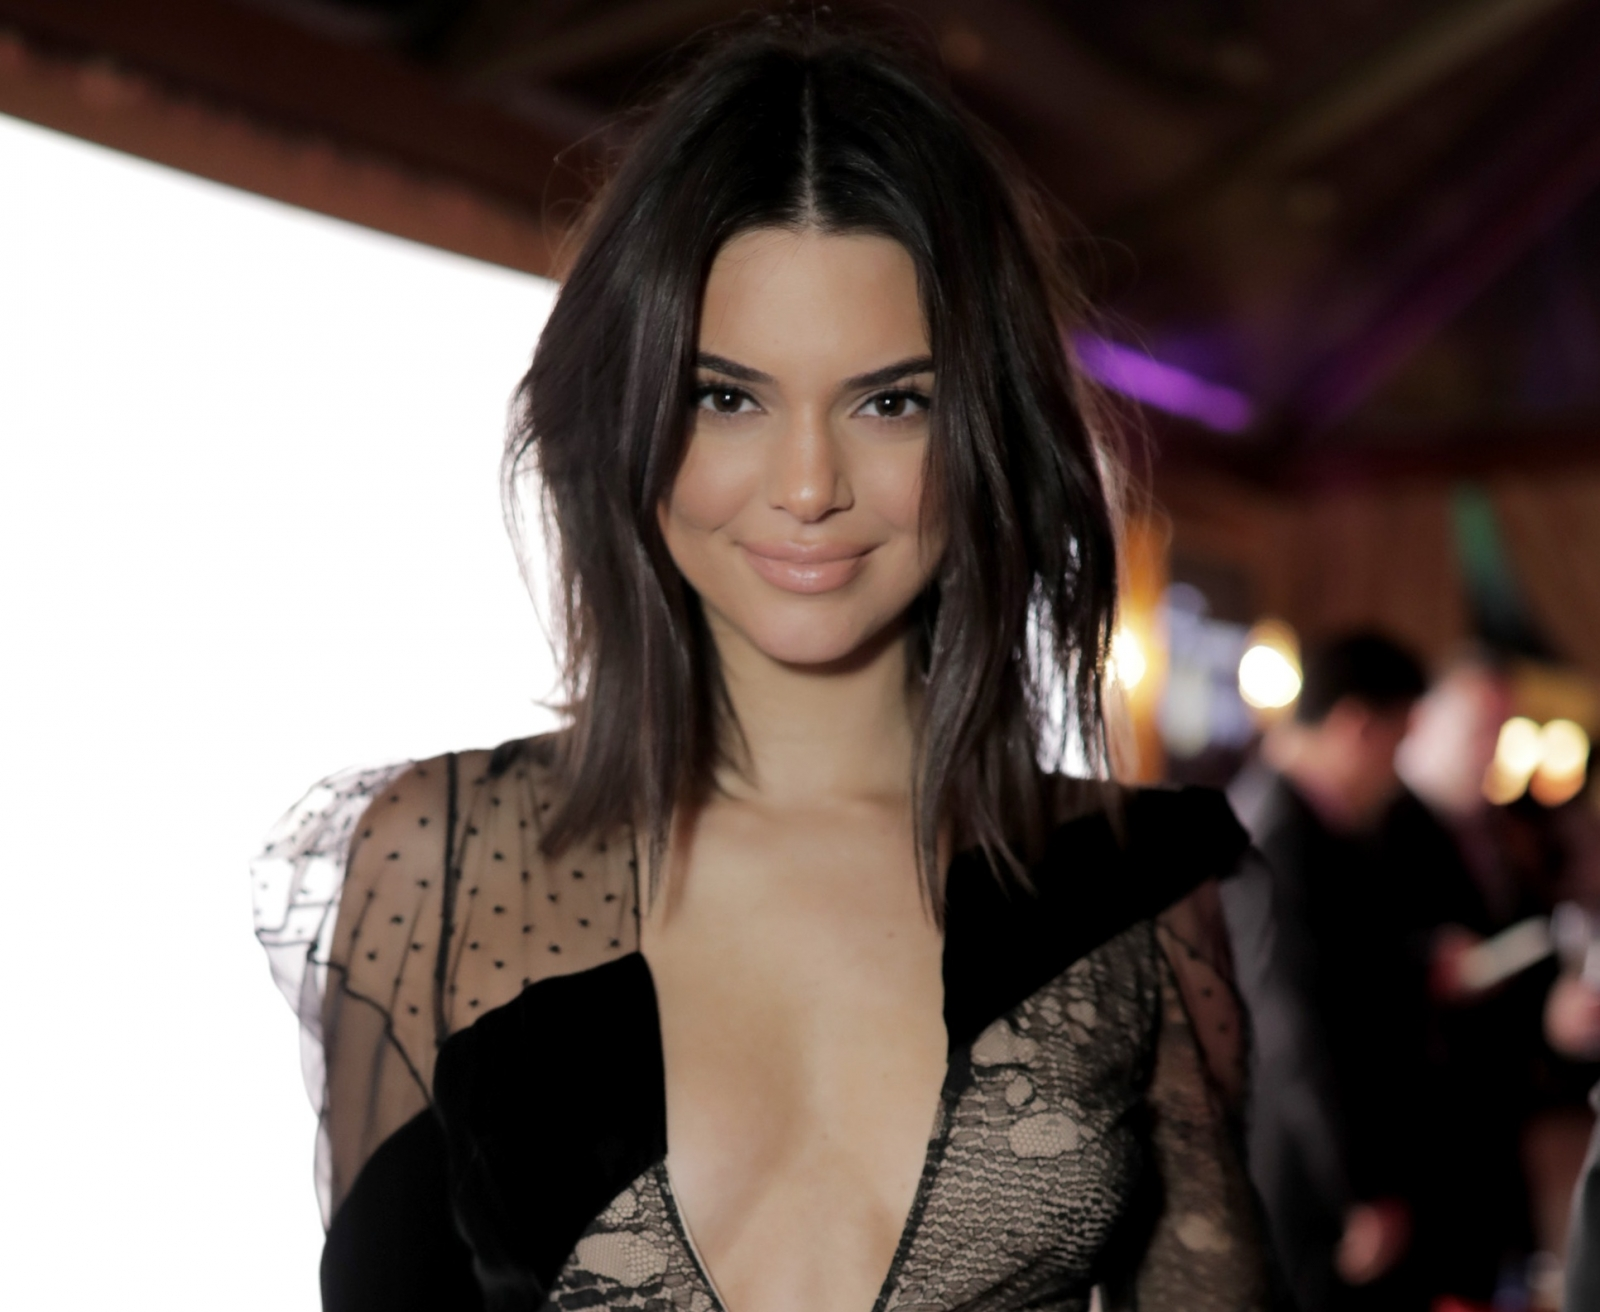 Kendall Jenner Strips For Racy Shoot And Opens Up About